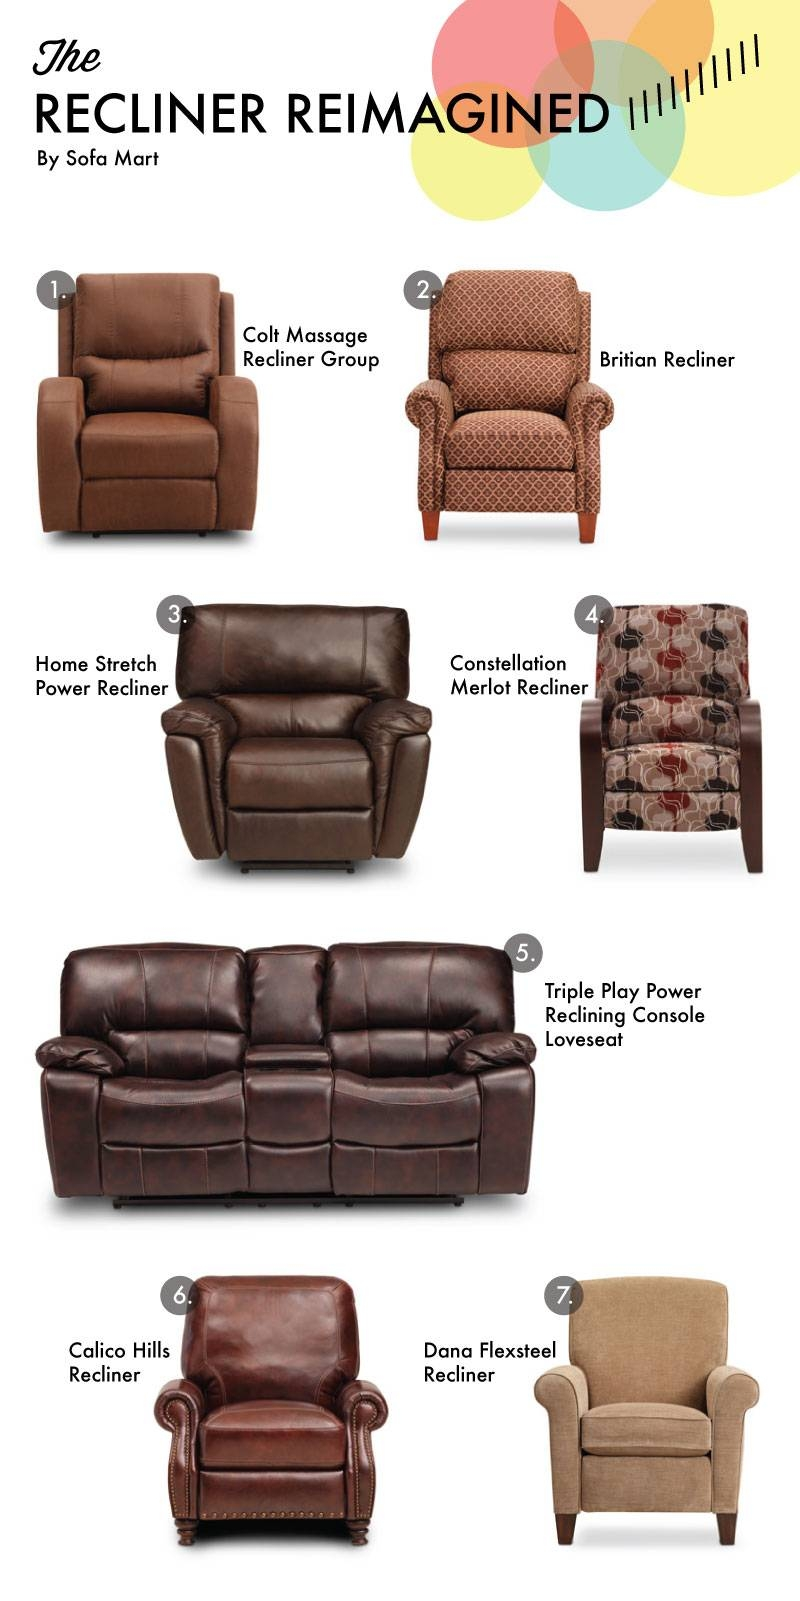 Recliner Reimagined For Father's Day - Sofa Mart For The Front Door within Sofa Mart Chairs (Image 19 of 30)